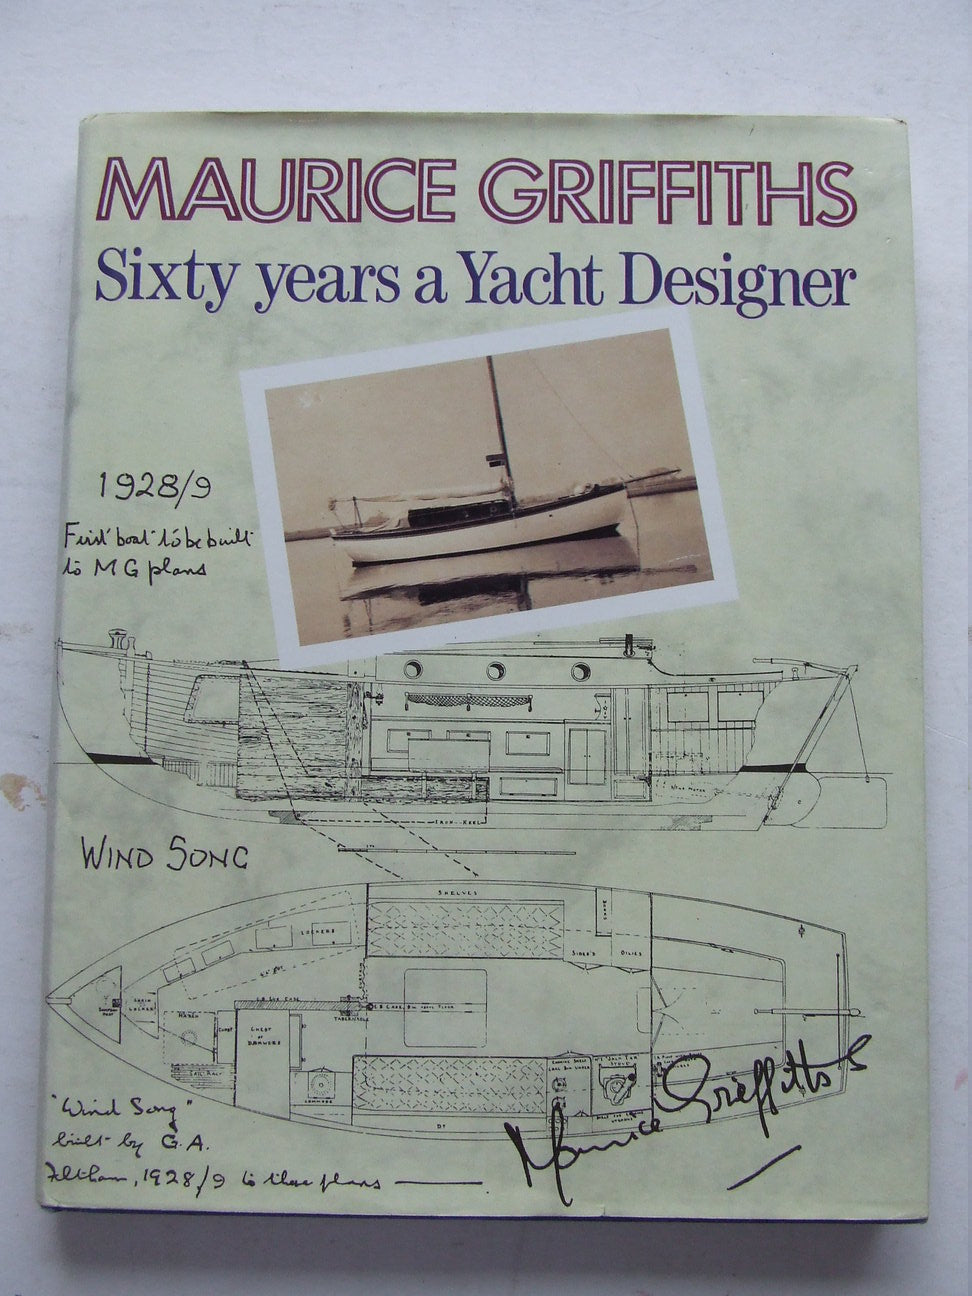 Sixty Years a Yacht Designer.